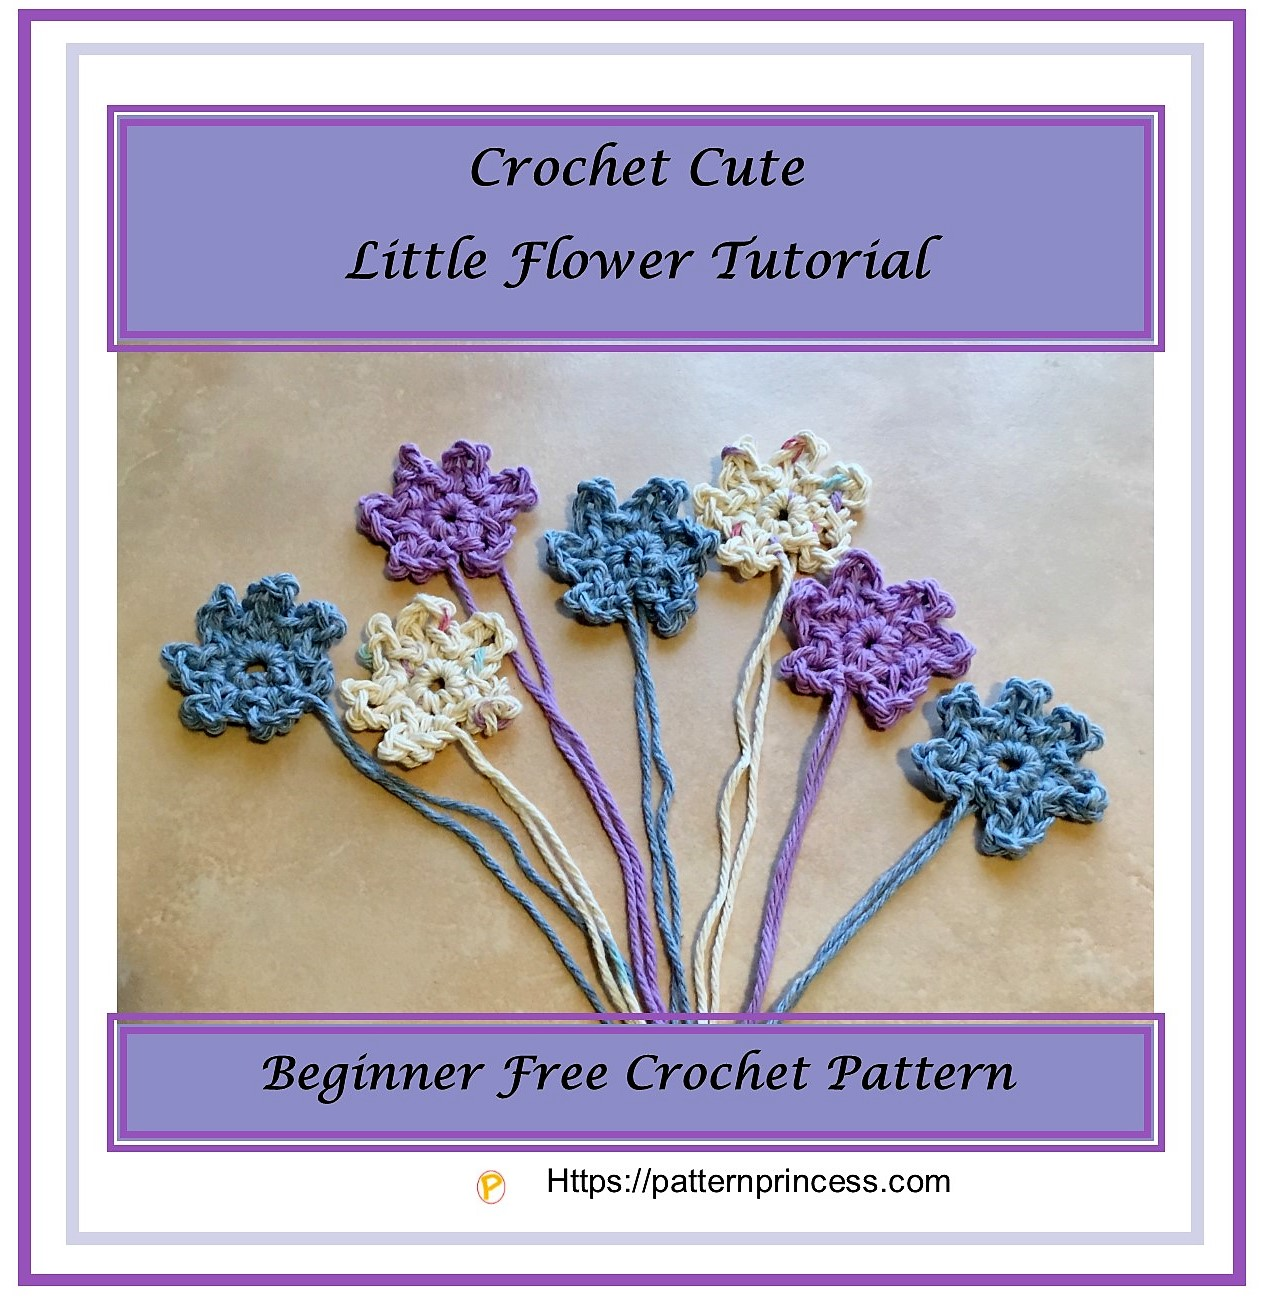 Crochet Cute Little Flower Tutorial 1